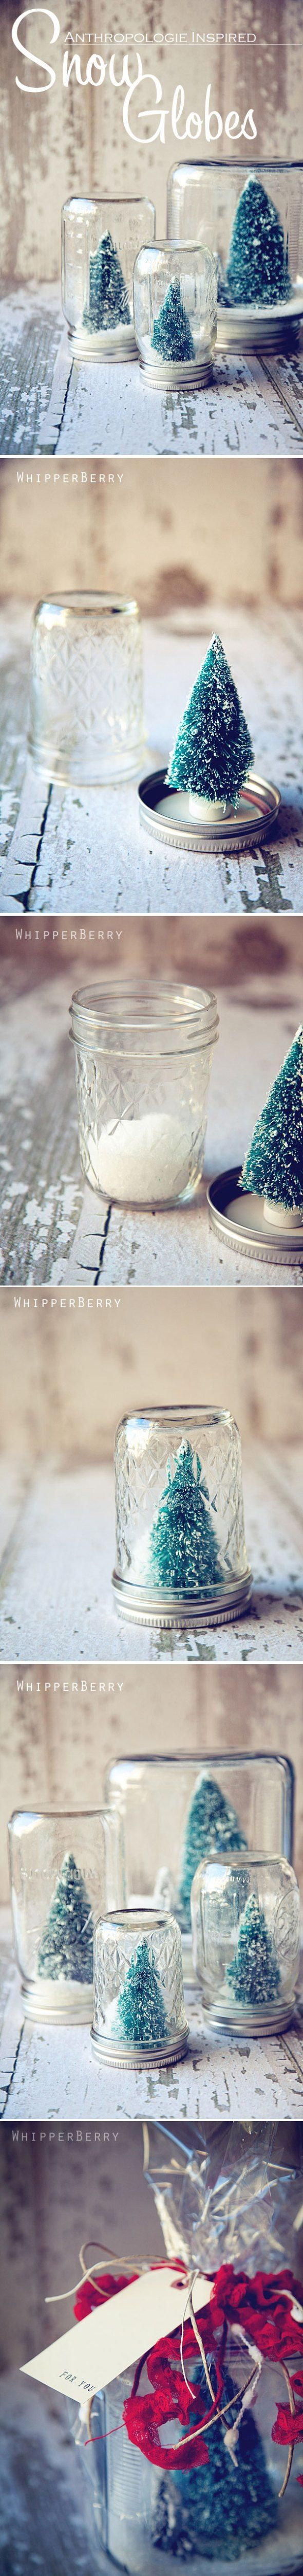 DIY Snow Globes (a use for all those extra wedding mason jars!)